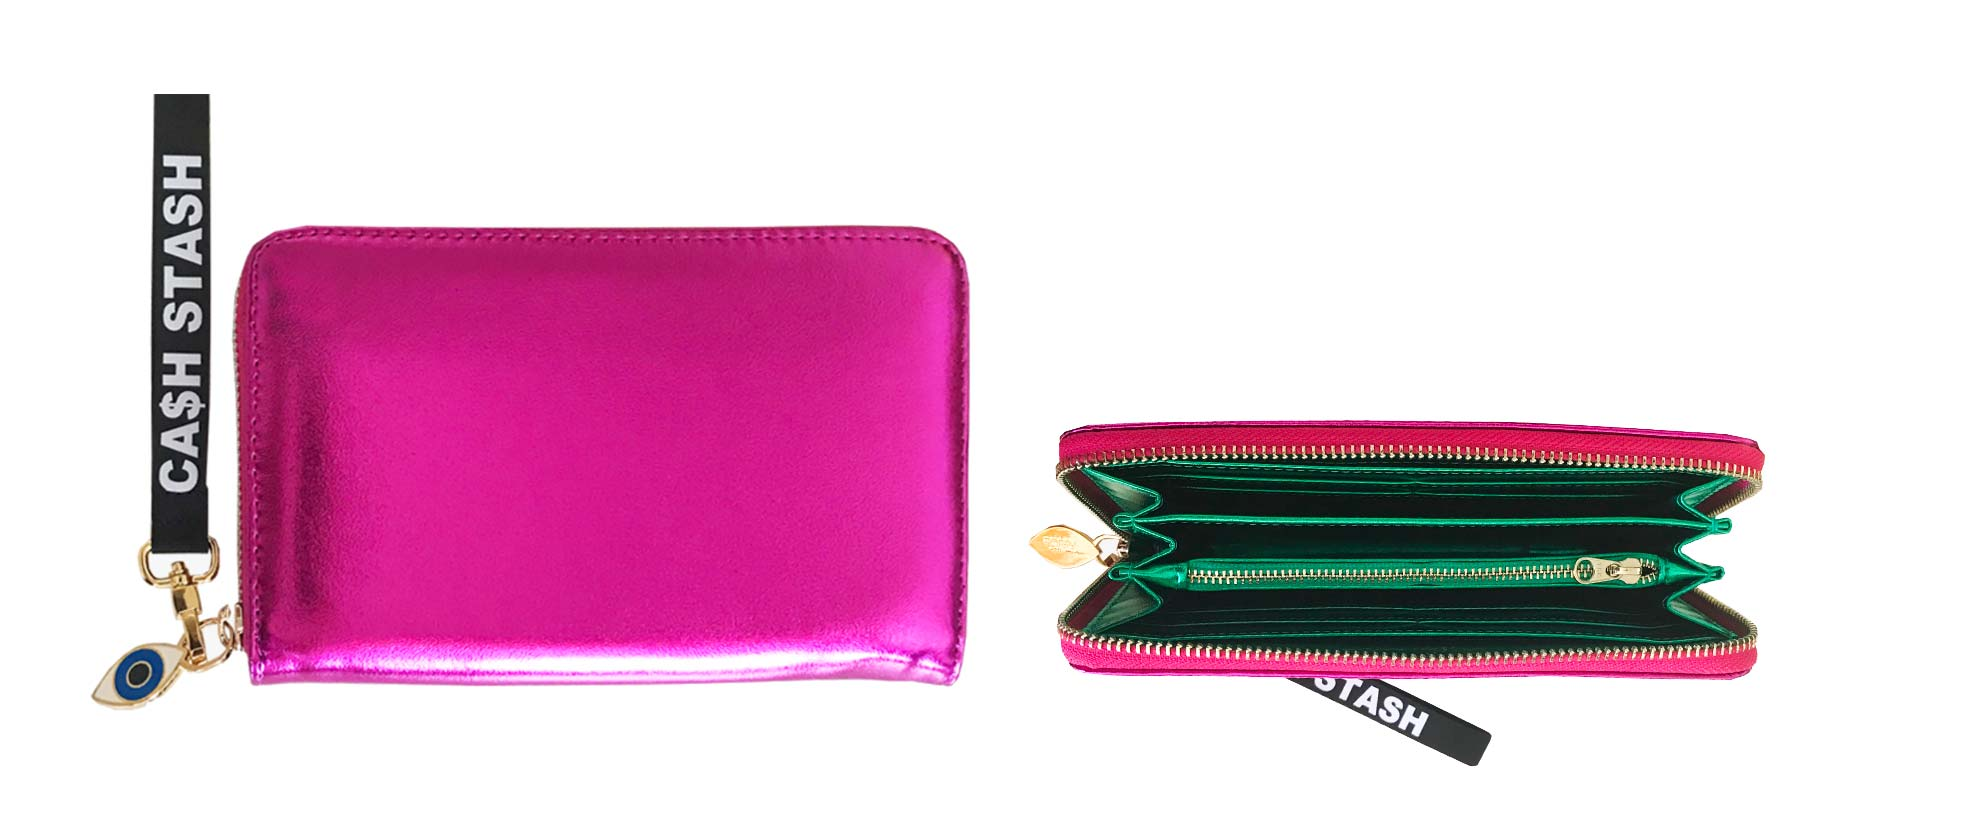 Exclusive WelleCo x Poppy Lissiman metallic Super Cash Stash Wallet